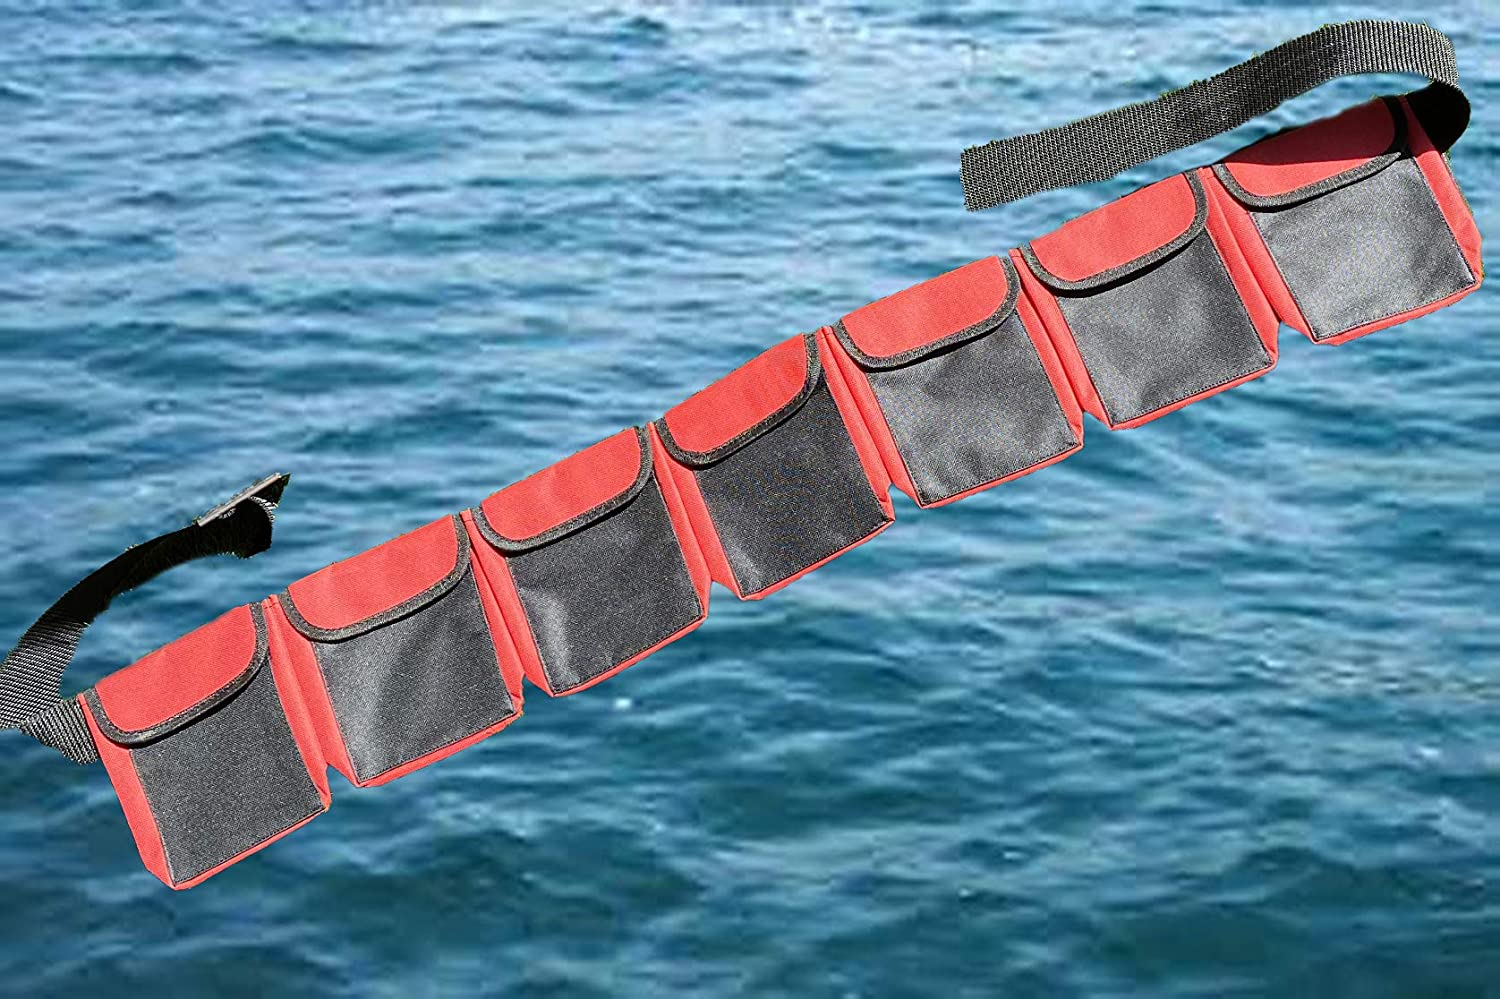 AKM-Diving pocket weight Max 67% OFF belts x red large New product type